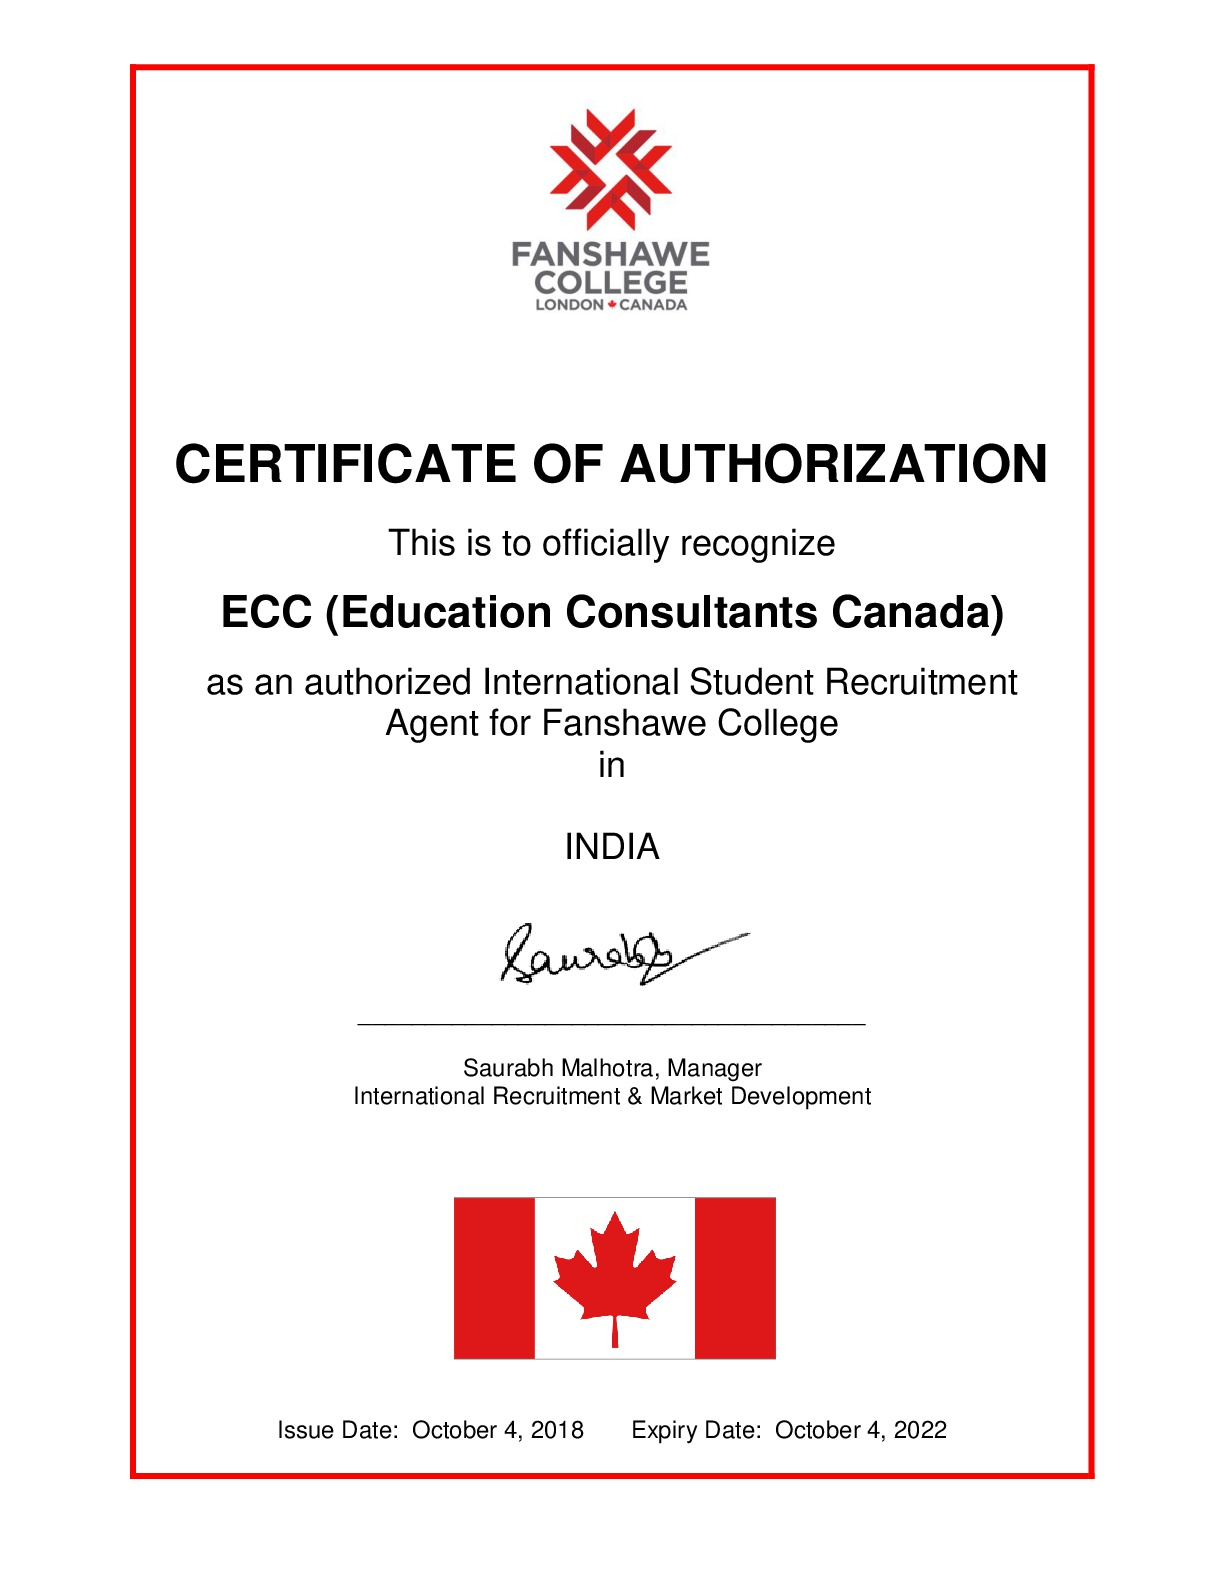 Education Consultants Canada is an authorized student recruiter for Seneca College of Applied Arts and Technology